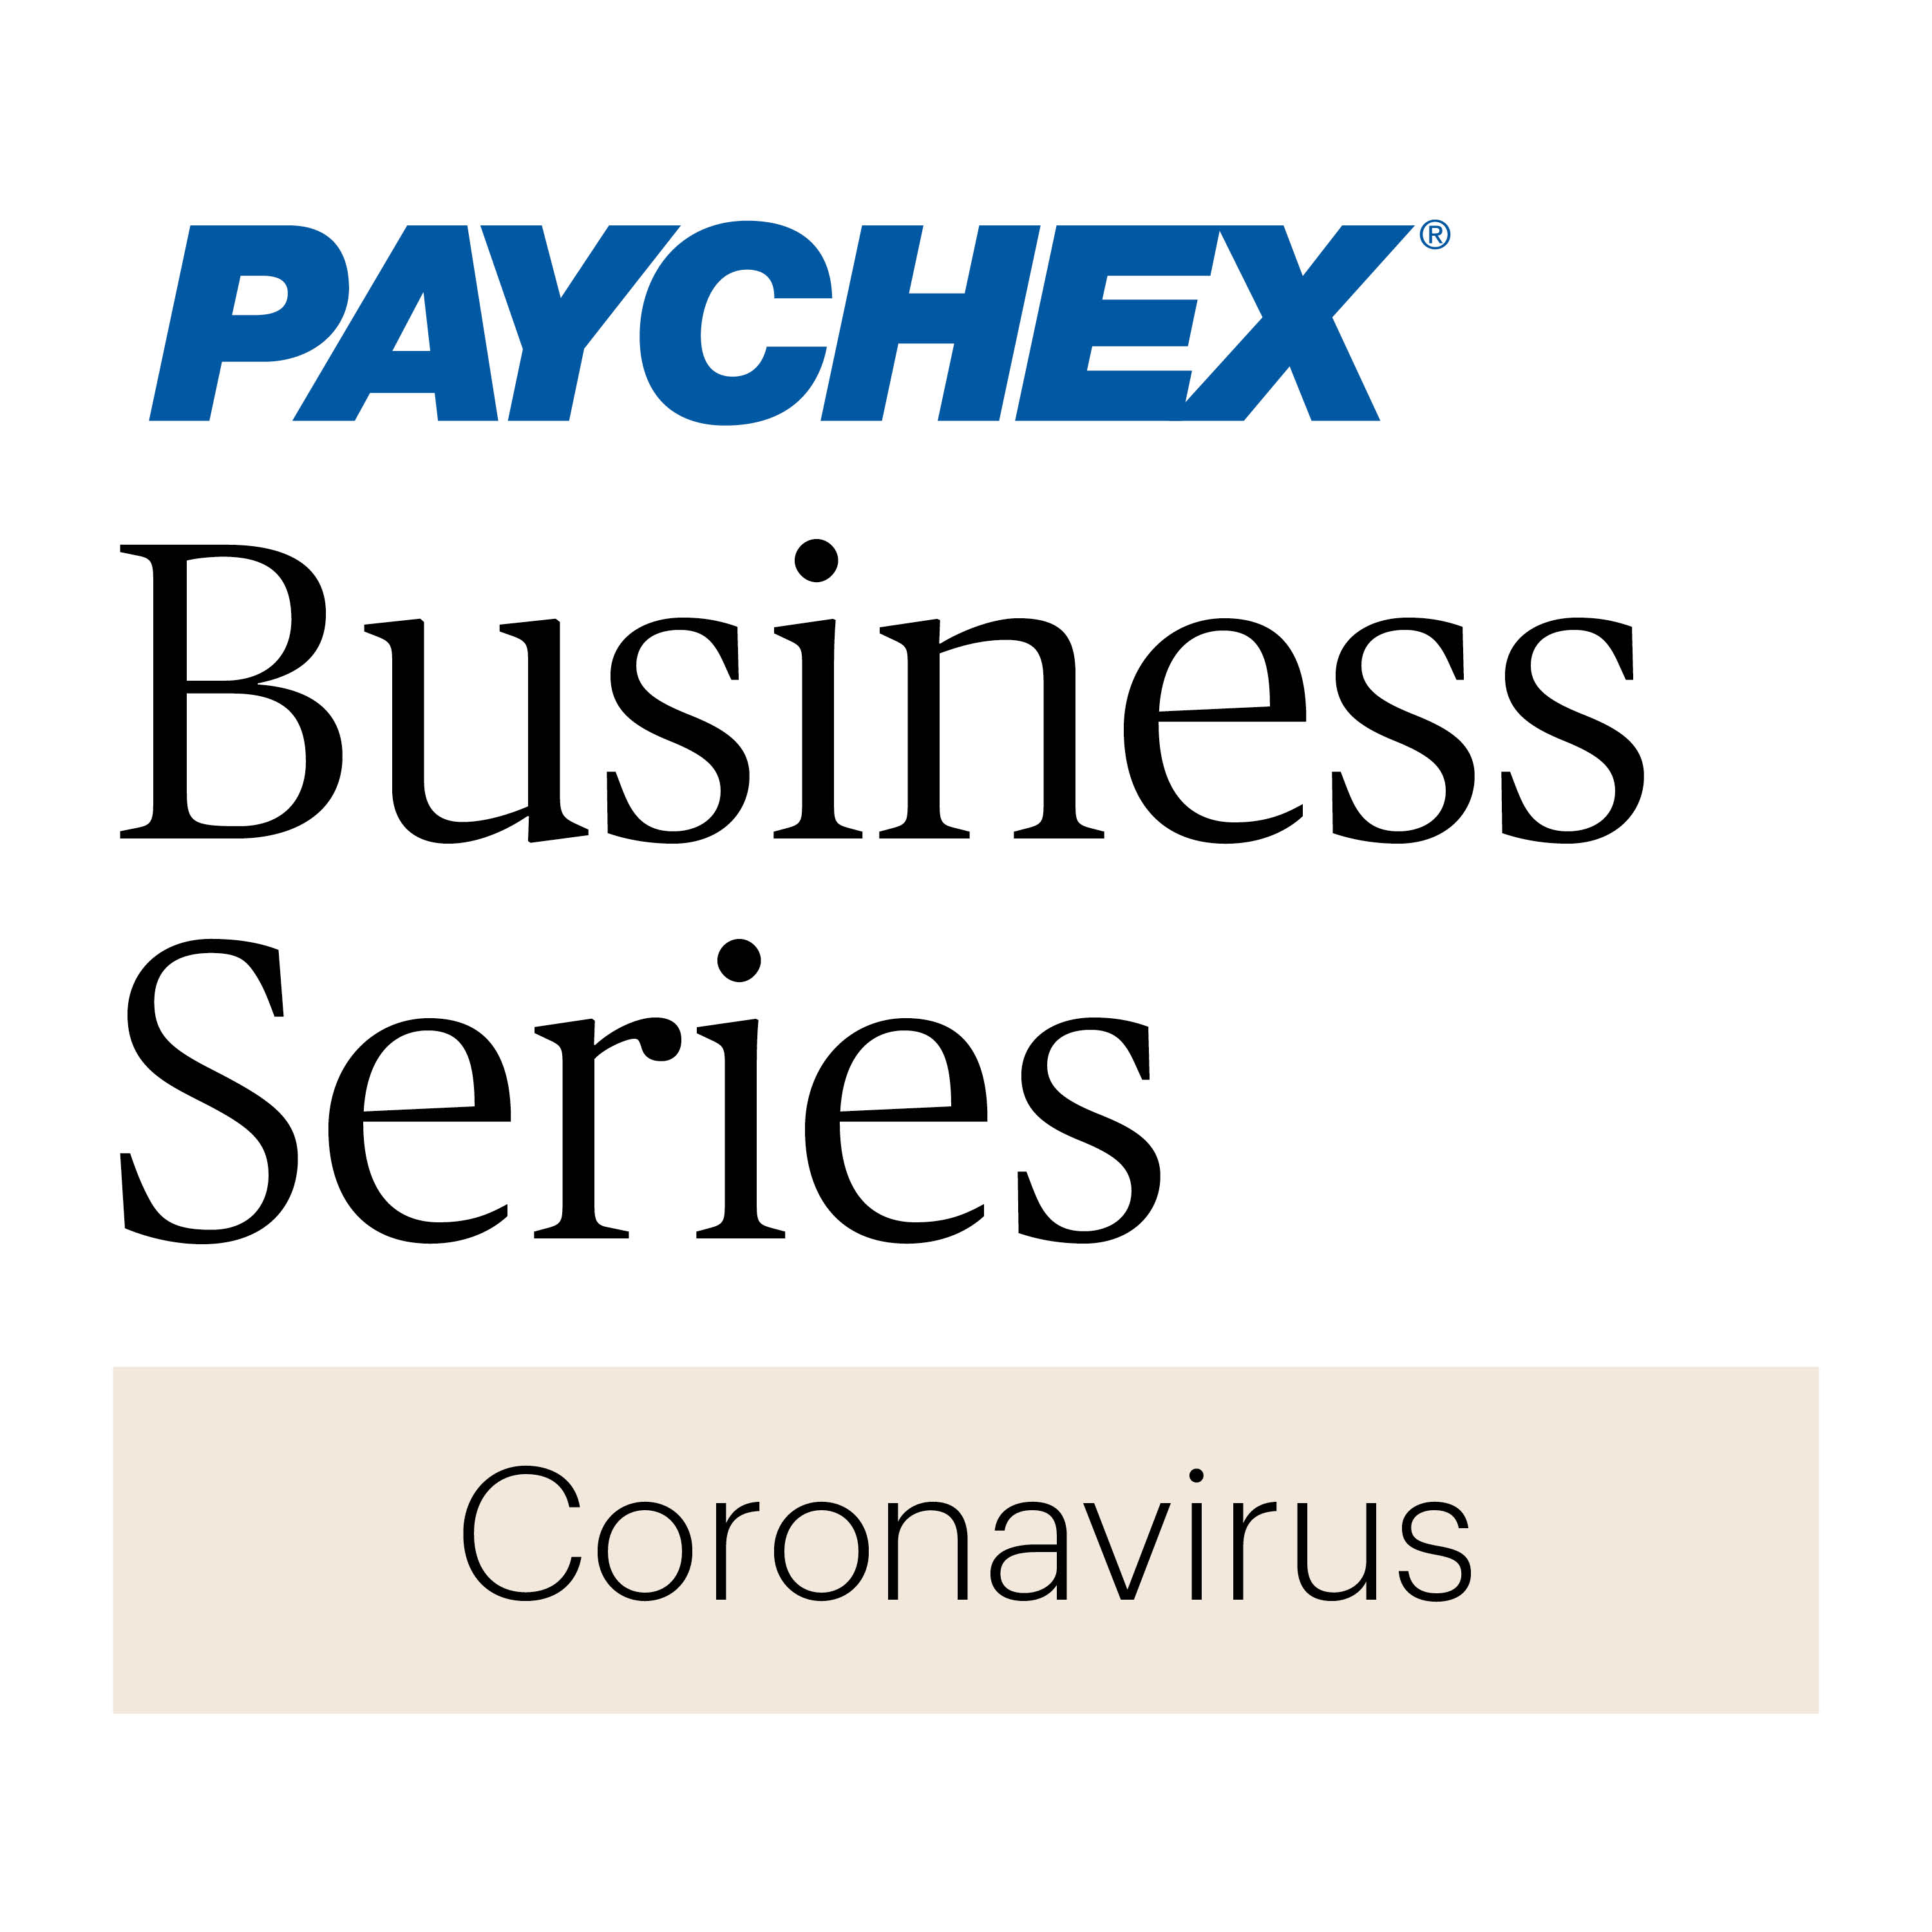 Paychex HR leadership series